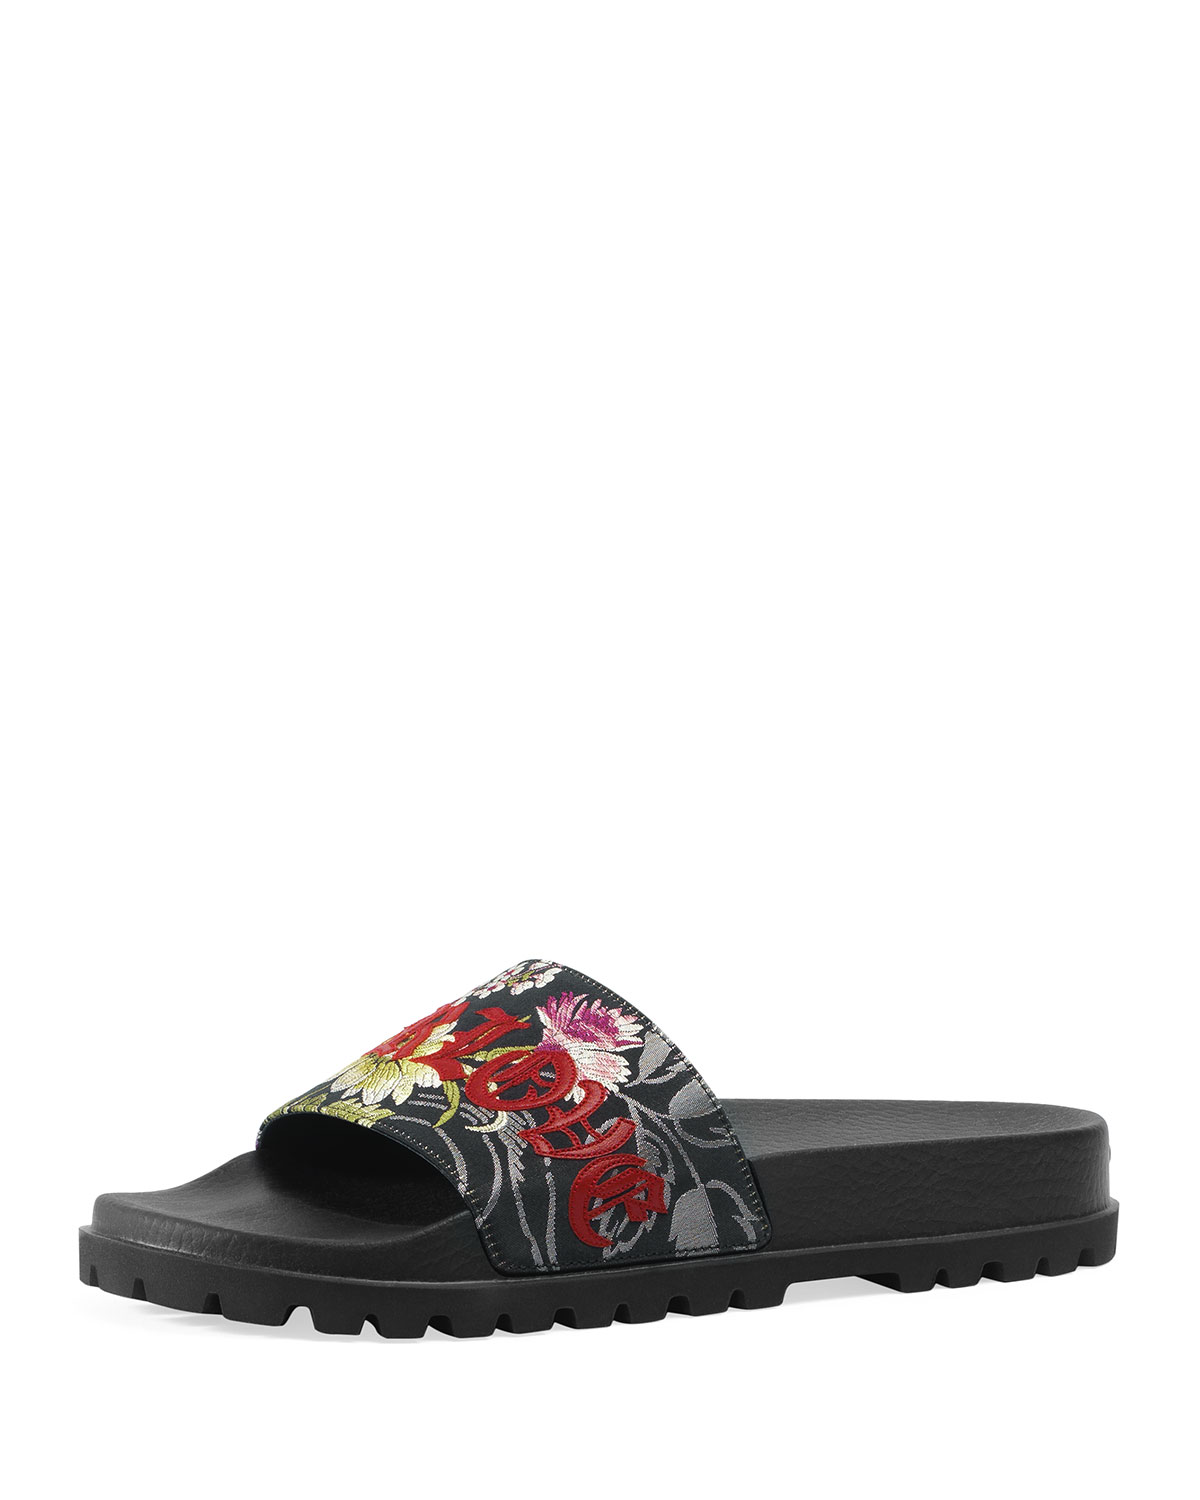 a585f8a79 Gucci Men s Pursuit Treck Floral Jacquard Slide Sandals